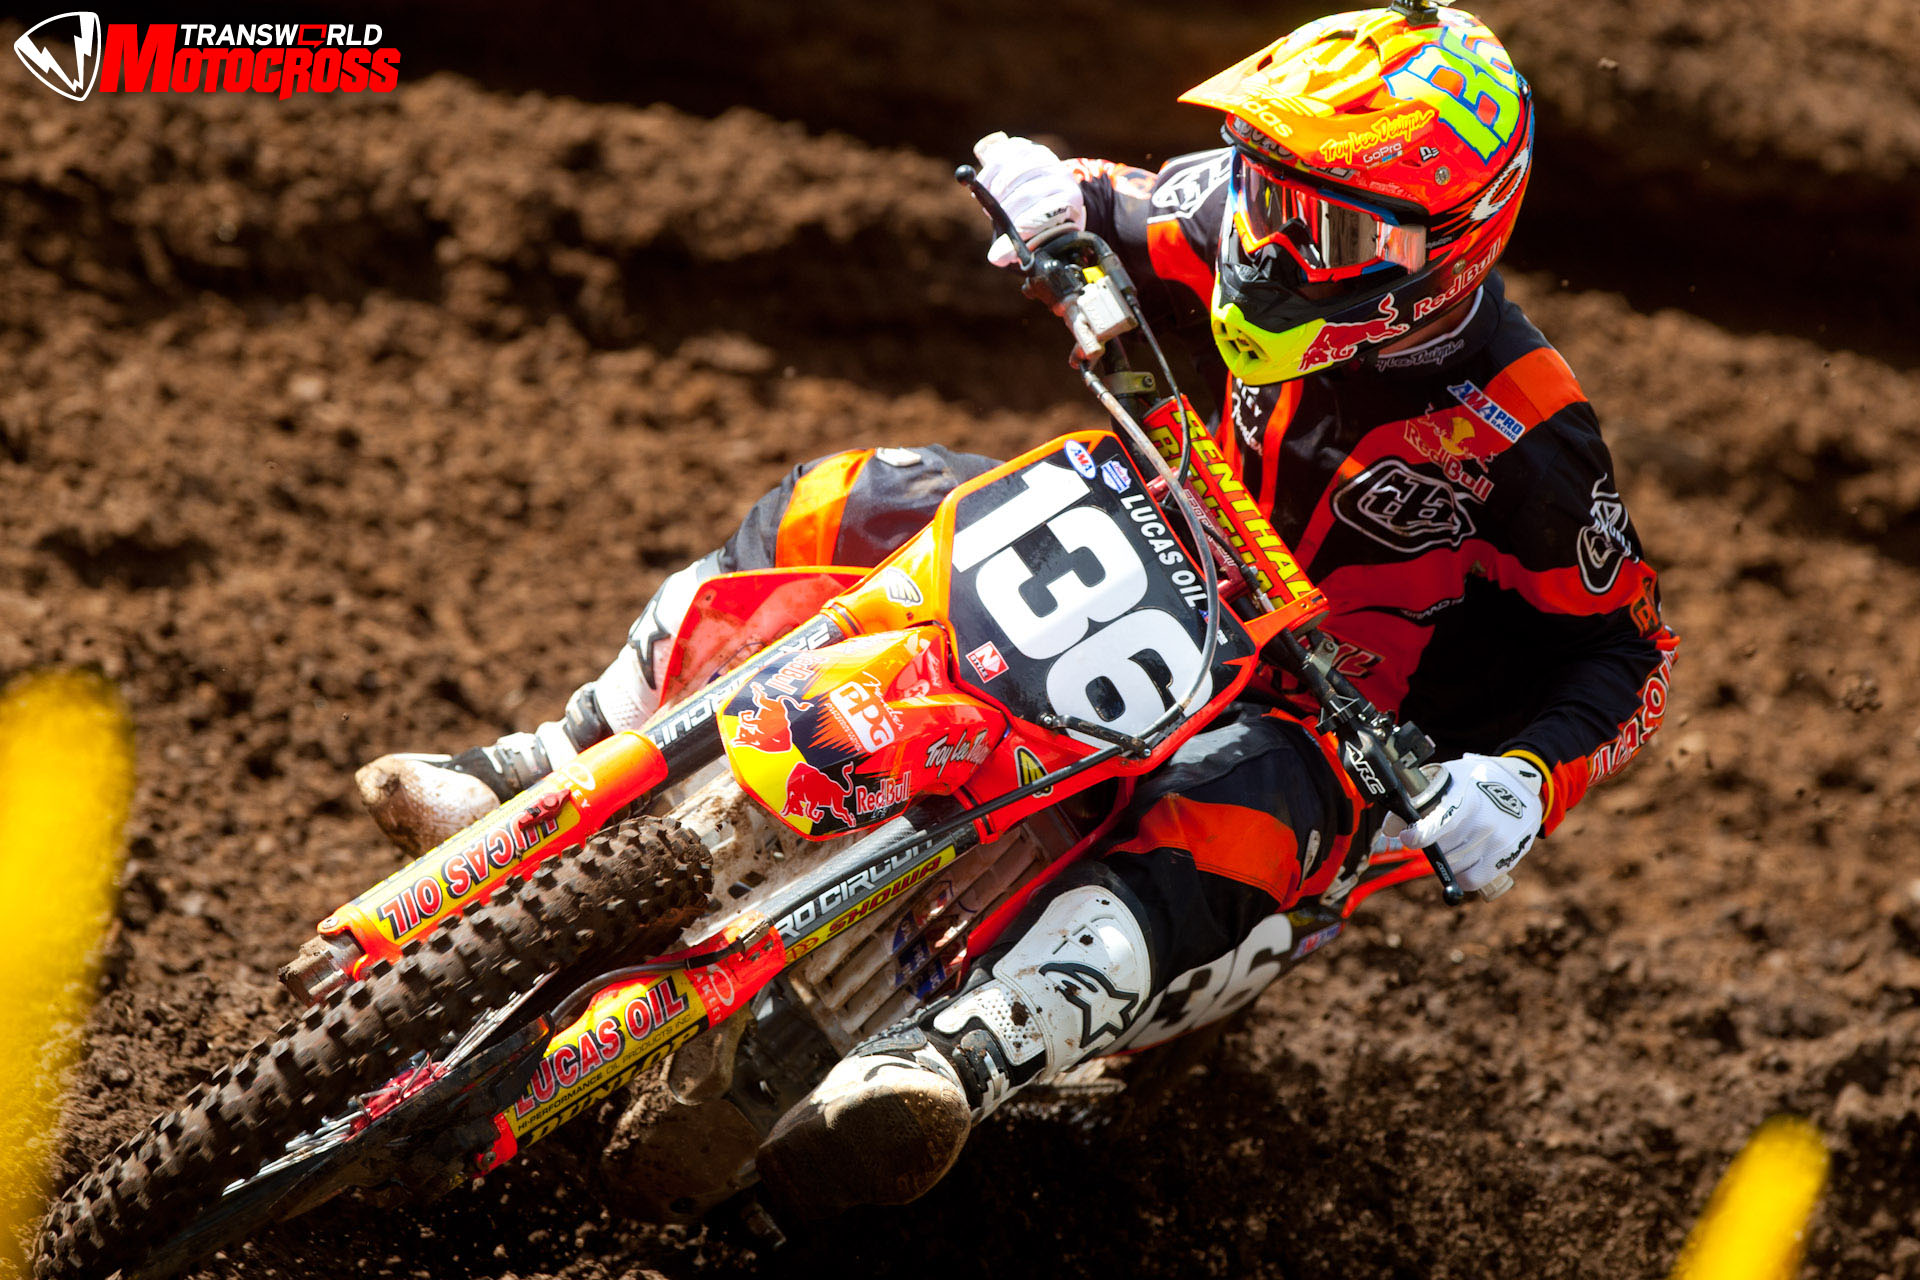 Weekly Wallpapers   Washougal 2012 Transworld Motocross 1920x1280